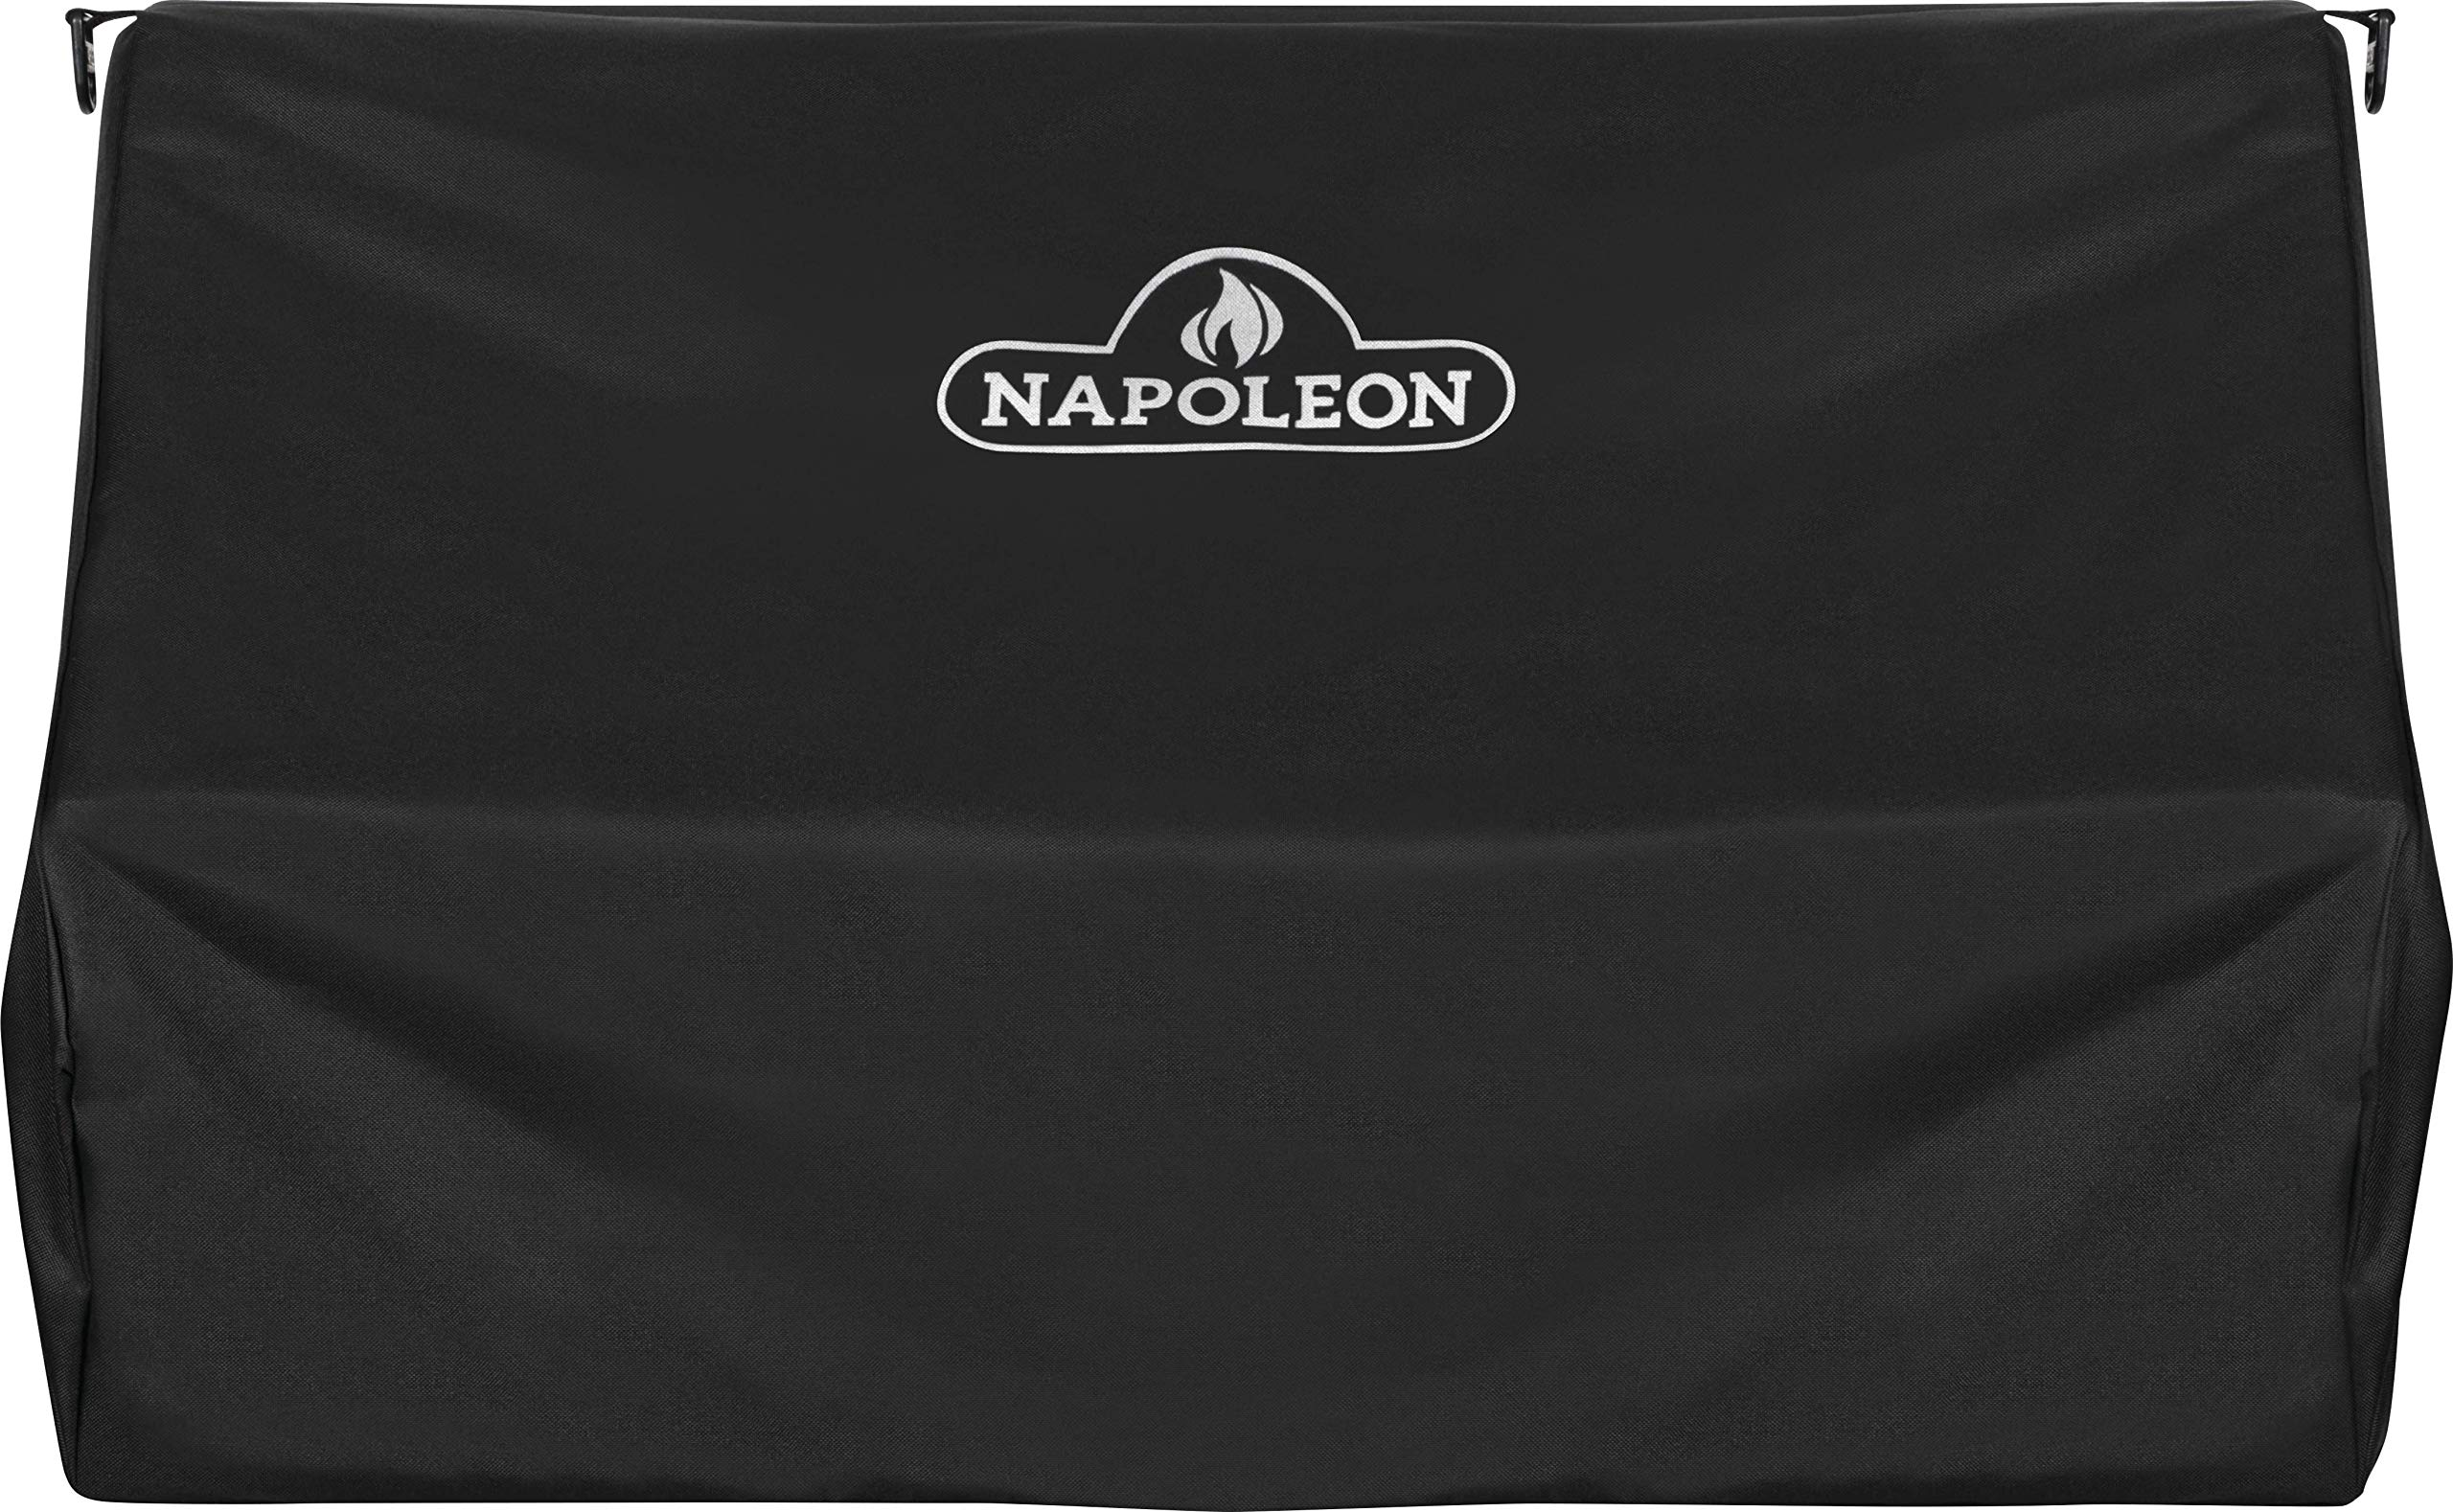 Napoleon 61666 PRO 665 Built in Grill Cover, Black